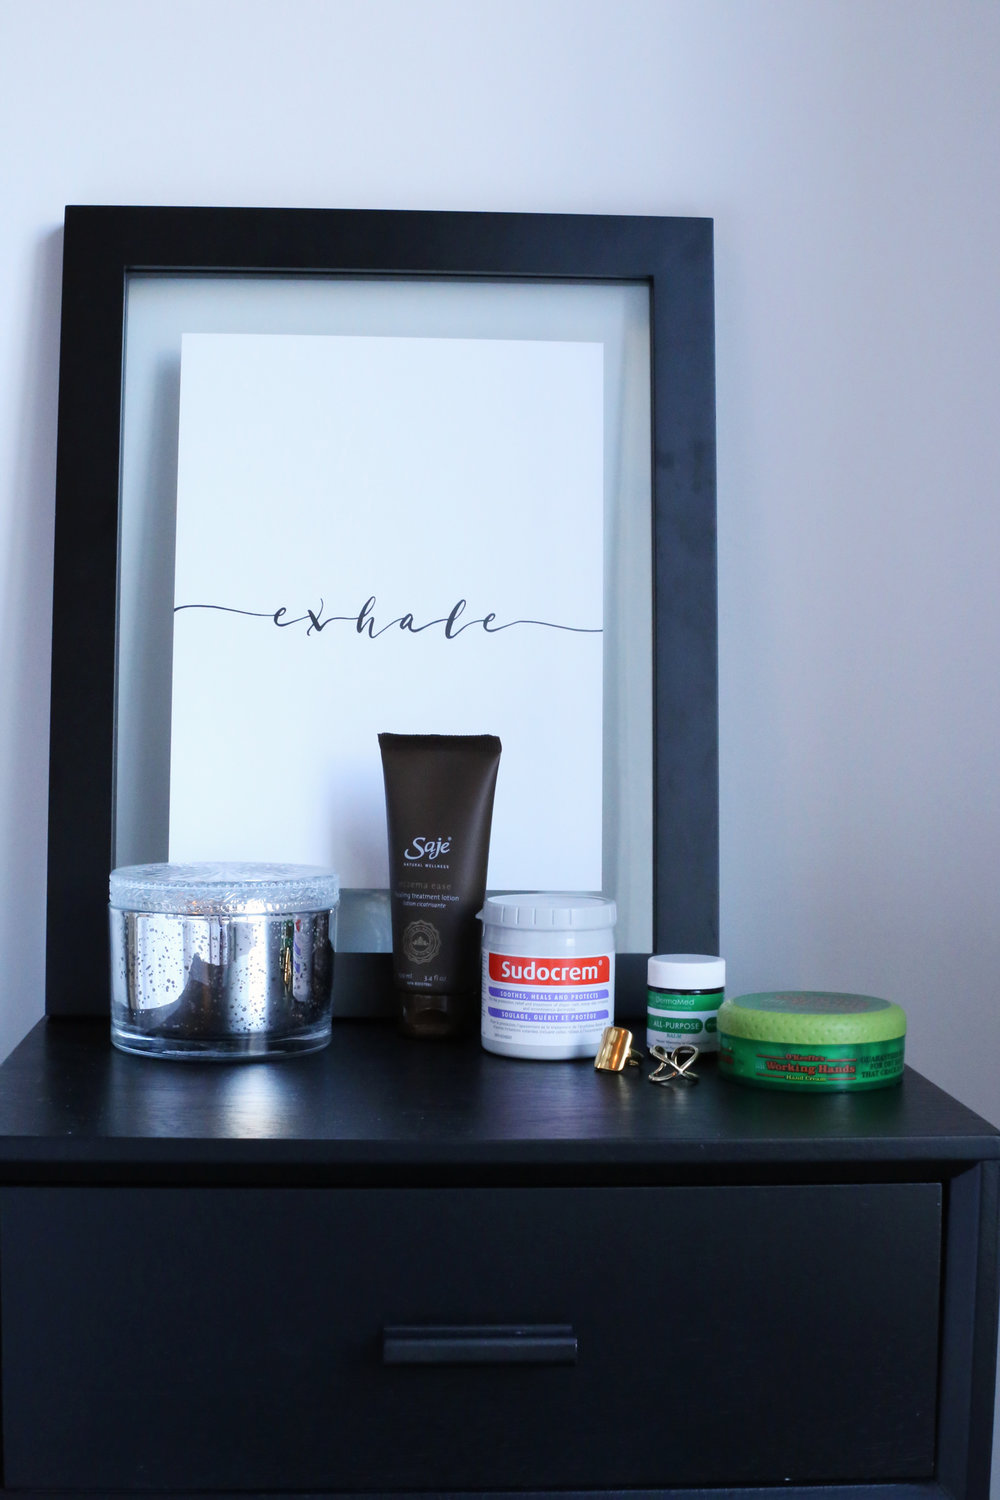 The products I use to manage the eczema on my ahnds: Saje Eczema Ease, Working Hands, Sudocrem, and DermaMed All Purpose Balm.